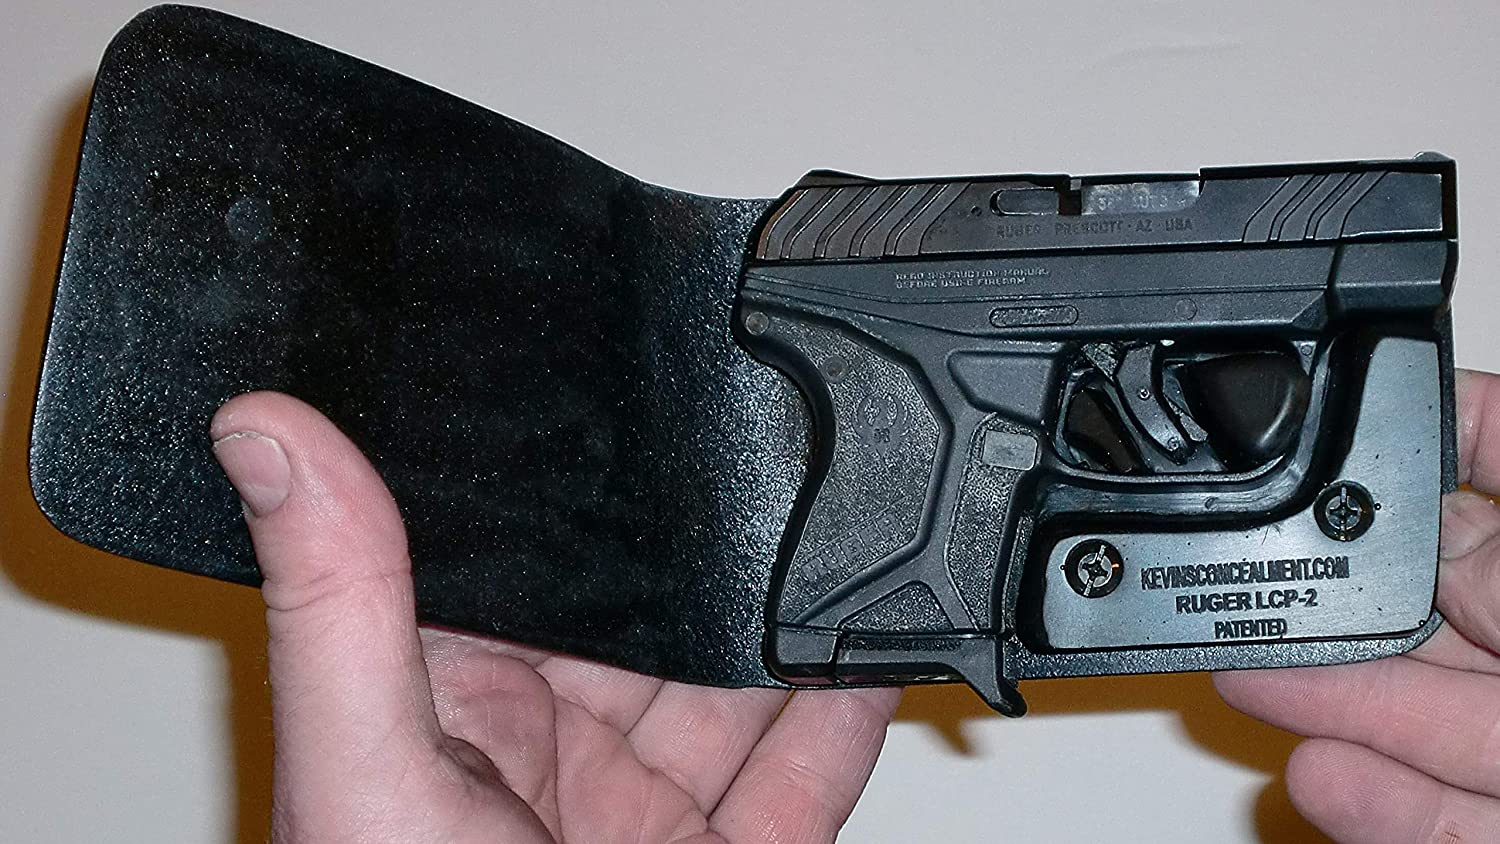 By Photo Congress || Ruger Lcp 2 With Laser Wallet Holster